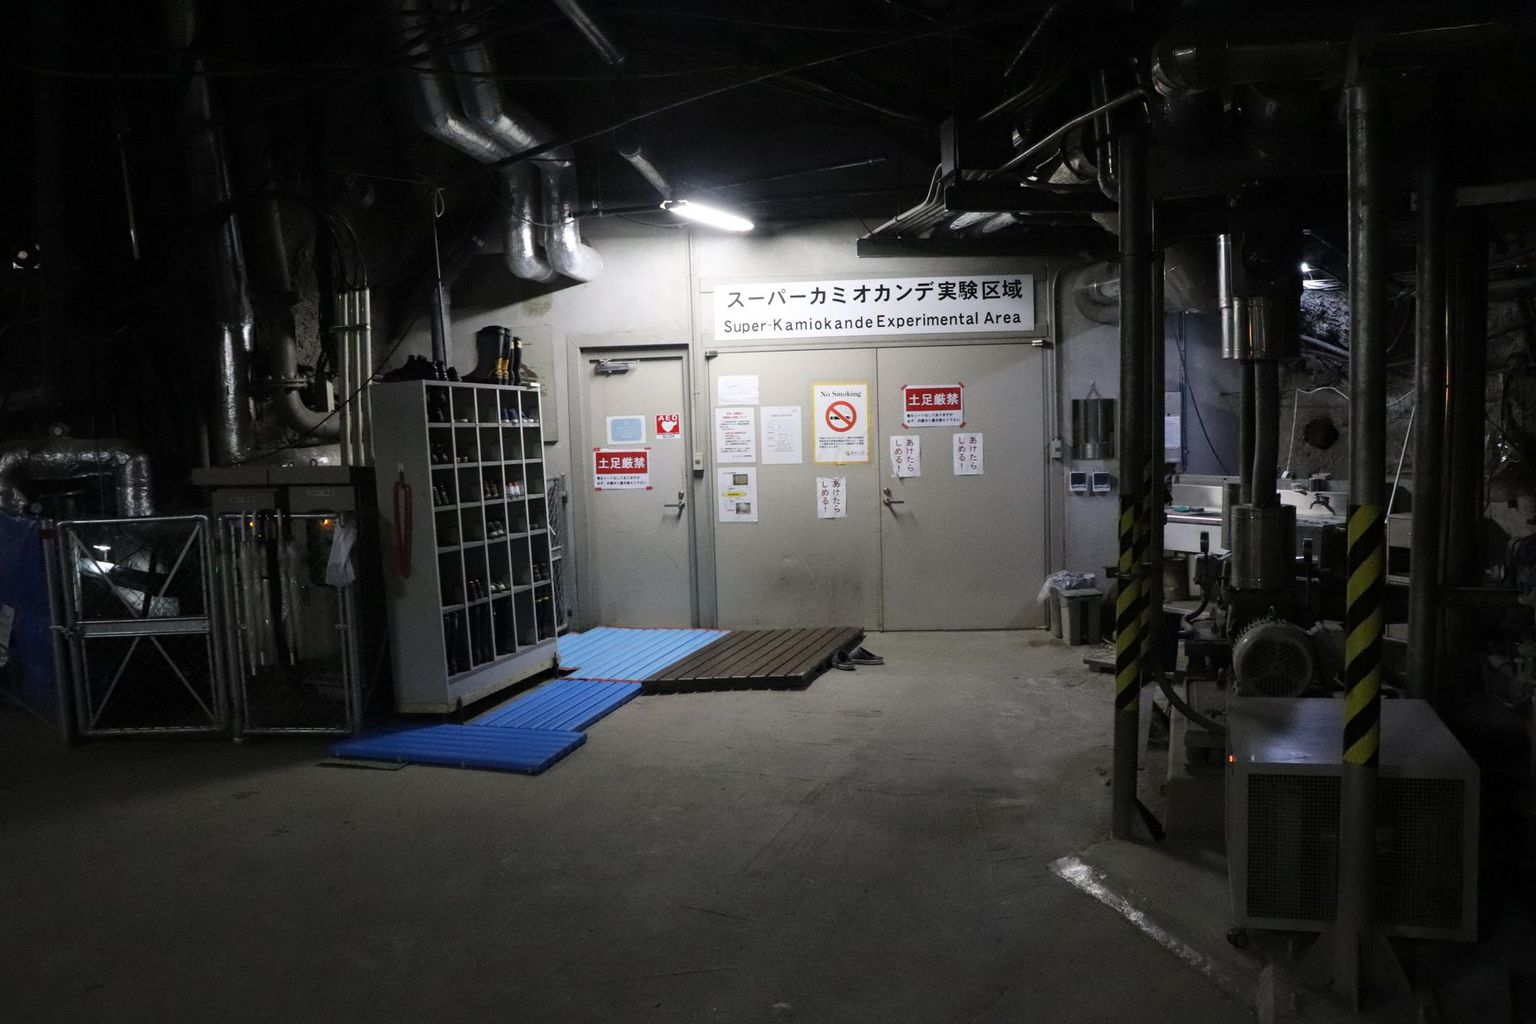 The entrance to the Super-Kamiokande detector. As always, when you enter a room in Japan, you have to take off your shoes (and stow them in the shelf on the left). Photo: B. Vogel